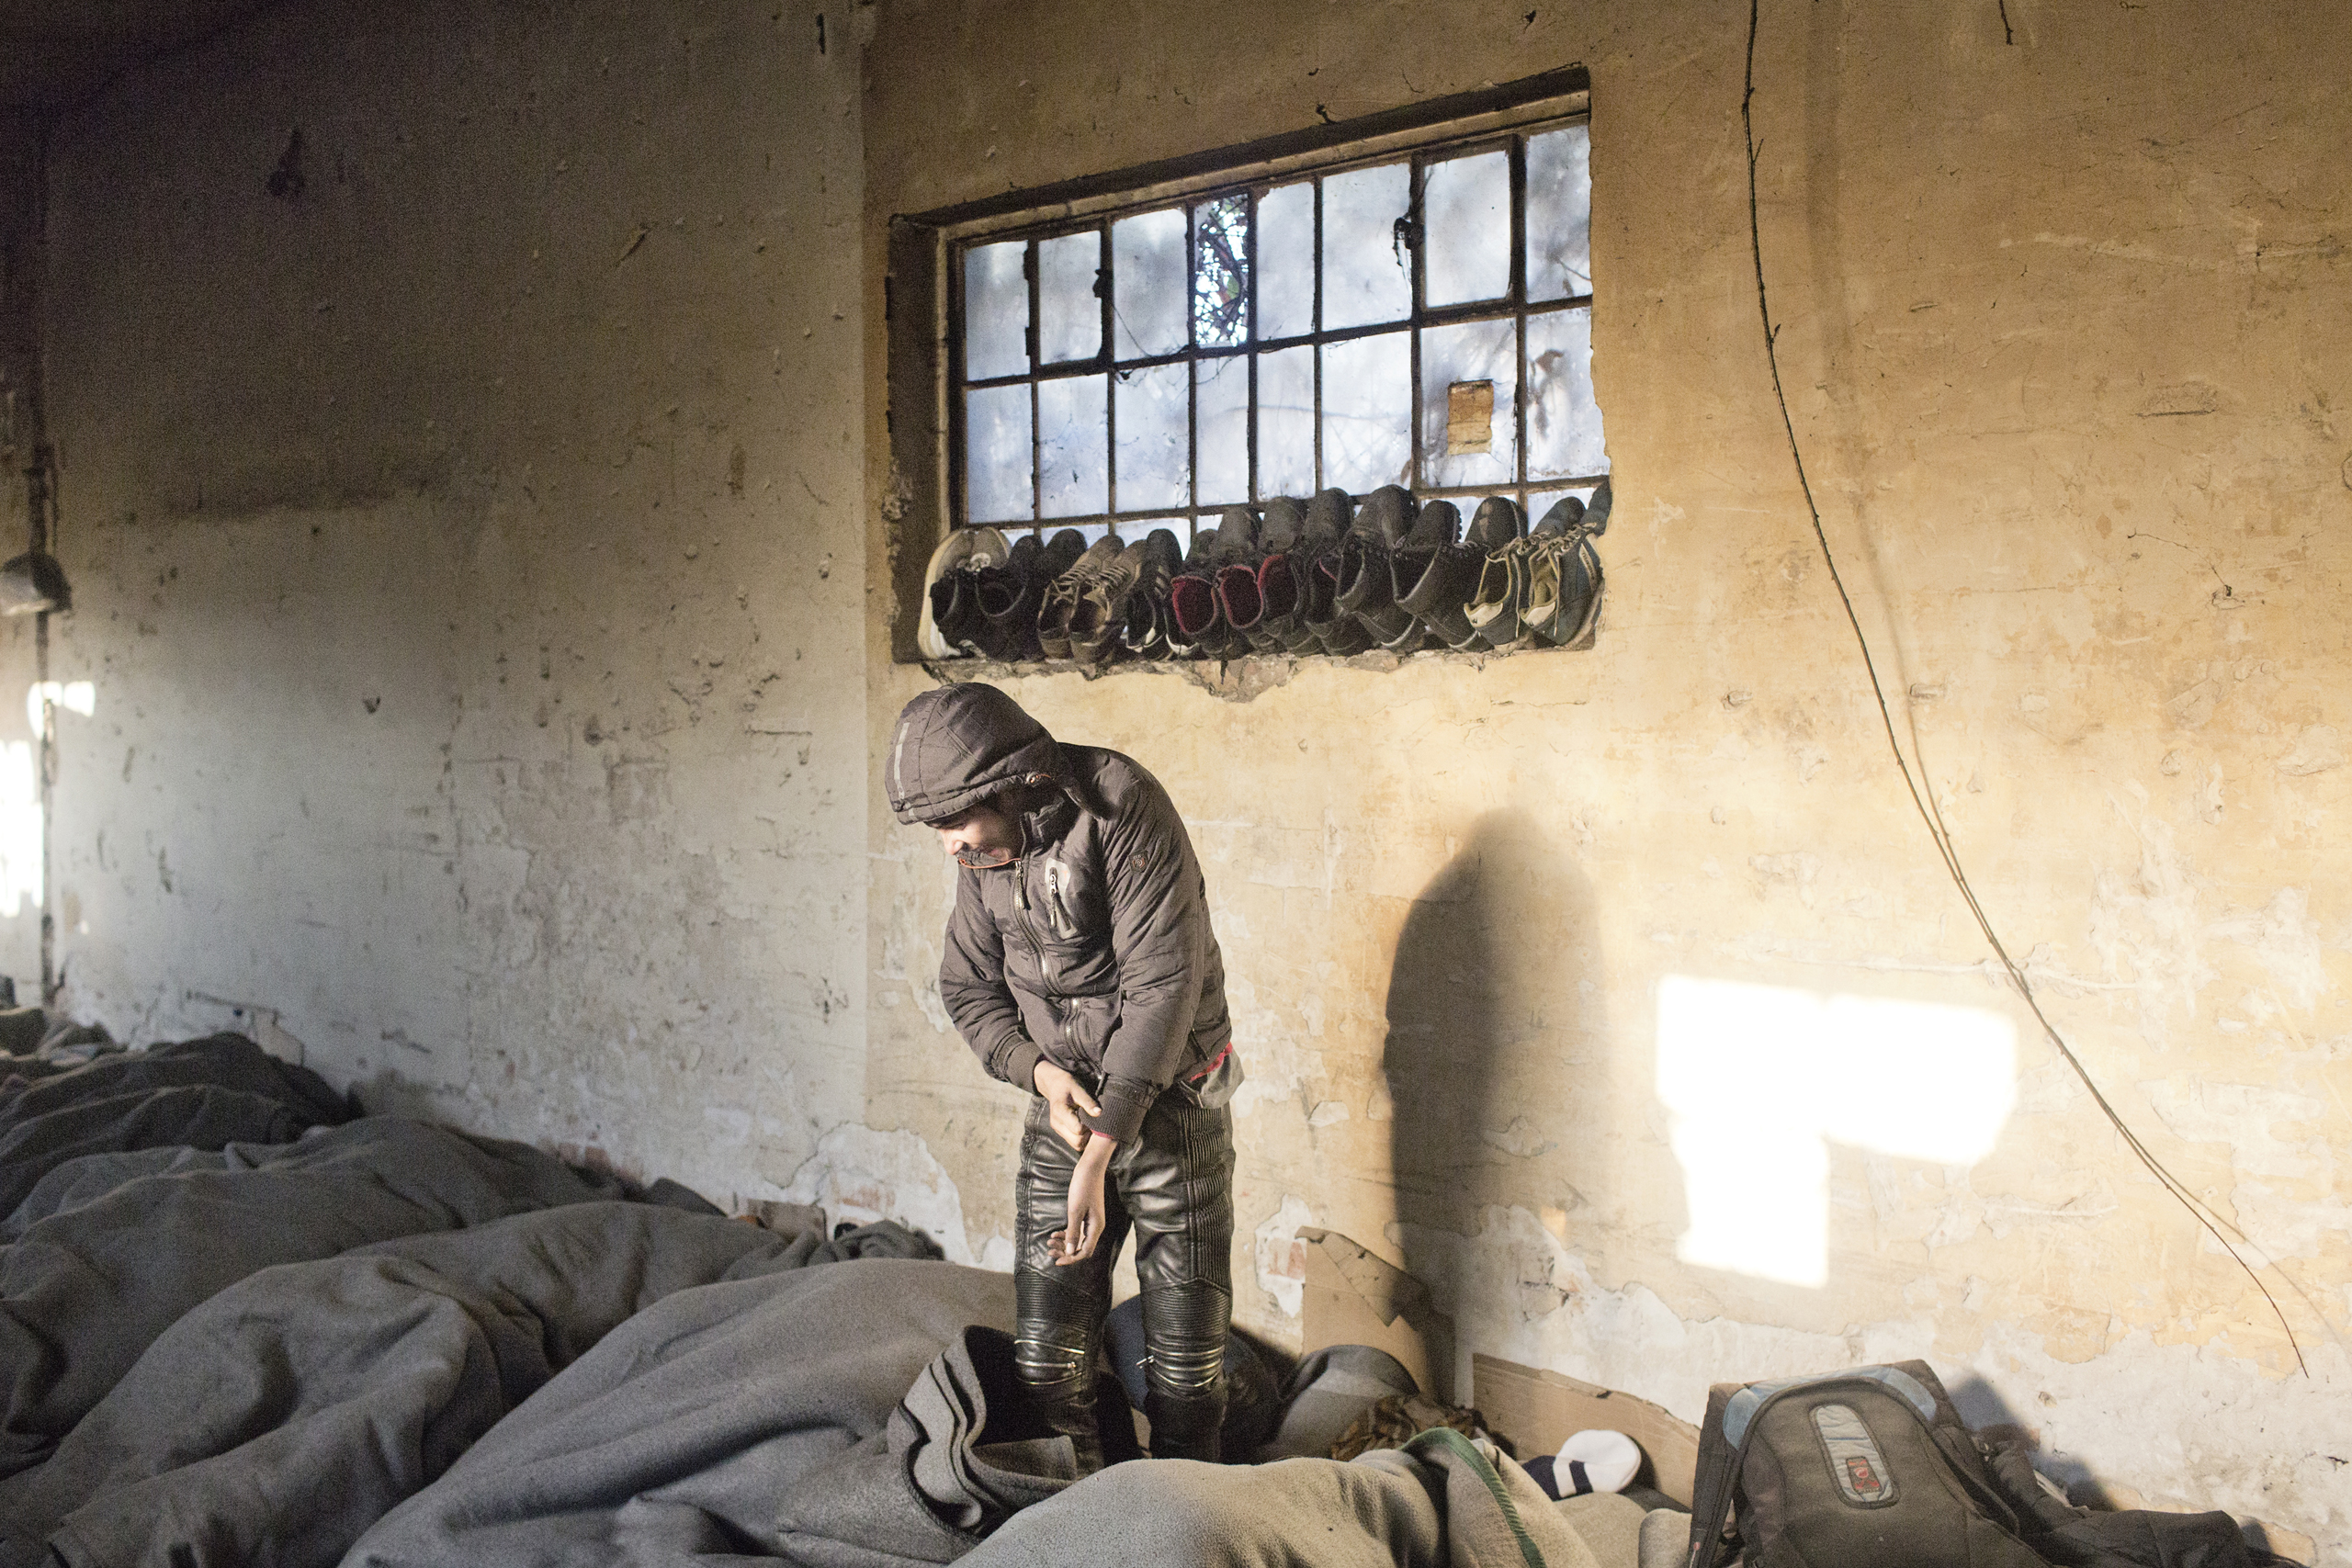 Unaccompanied minors wake up early in the morning in an abandoned warehouse  in central Belgrade, Serbia. They will have to pay thousands of euros to smugglers help them leave and enter the European Union, Jan. 2017.